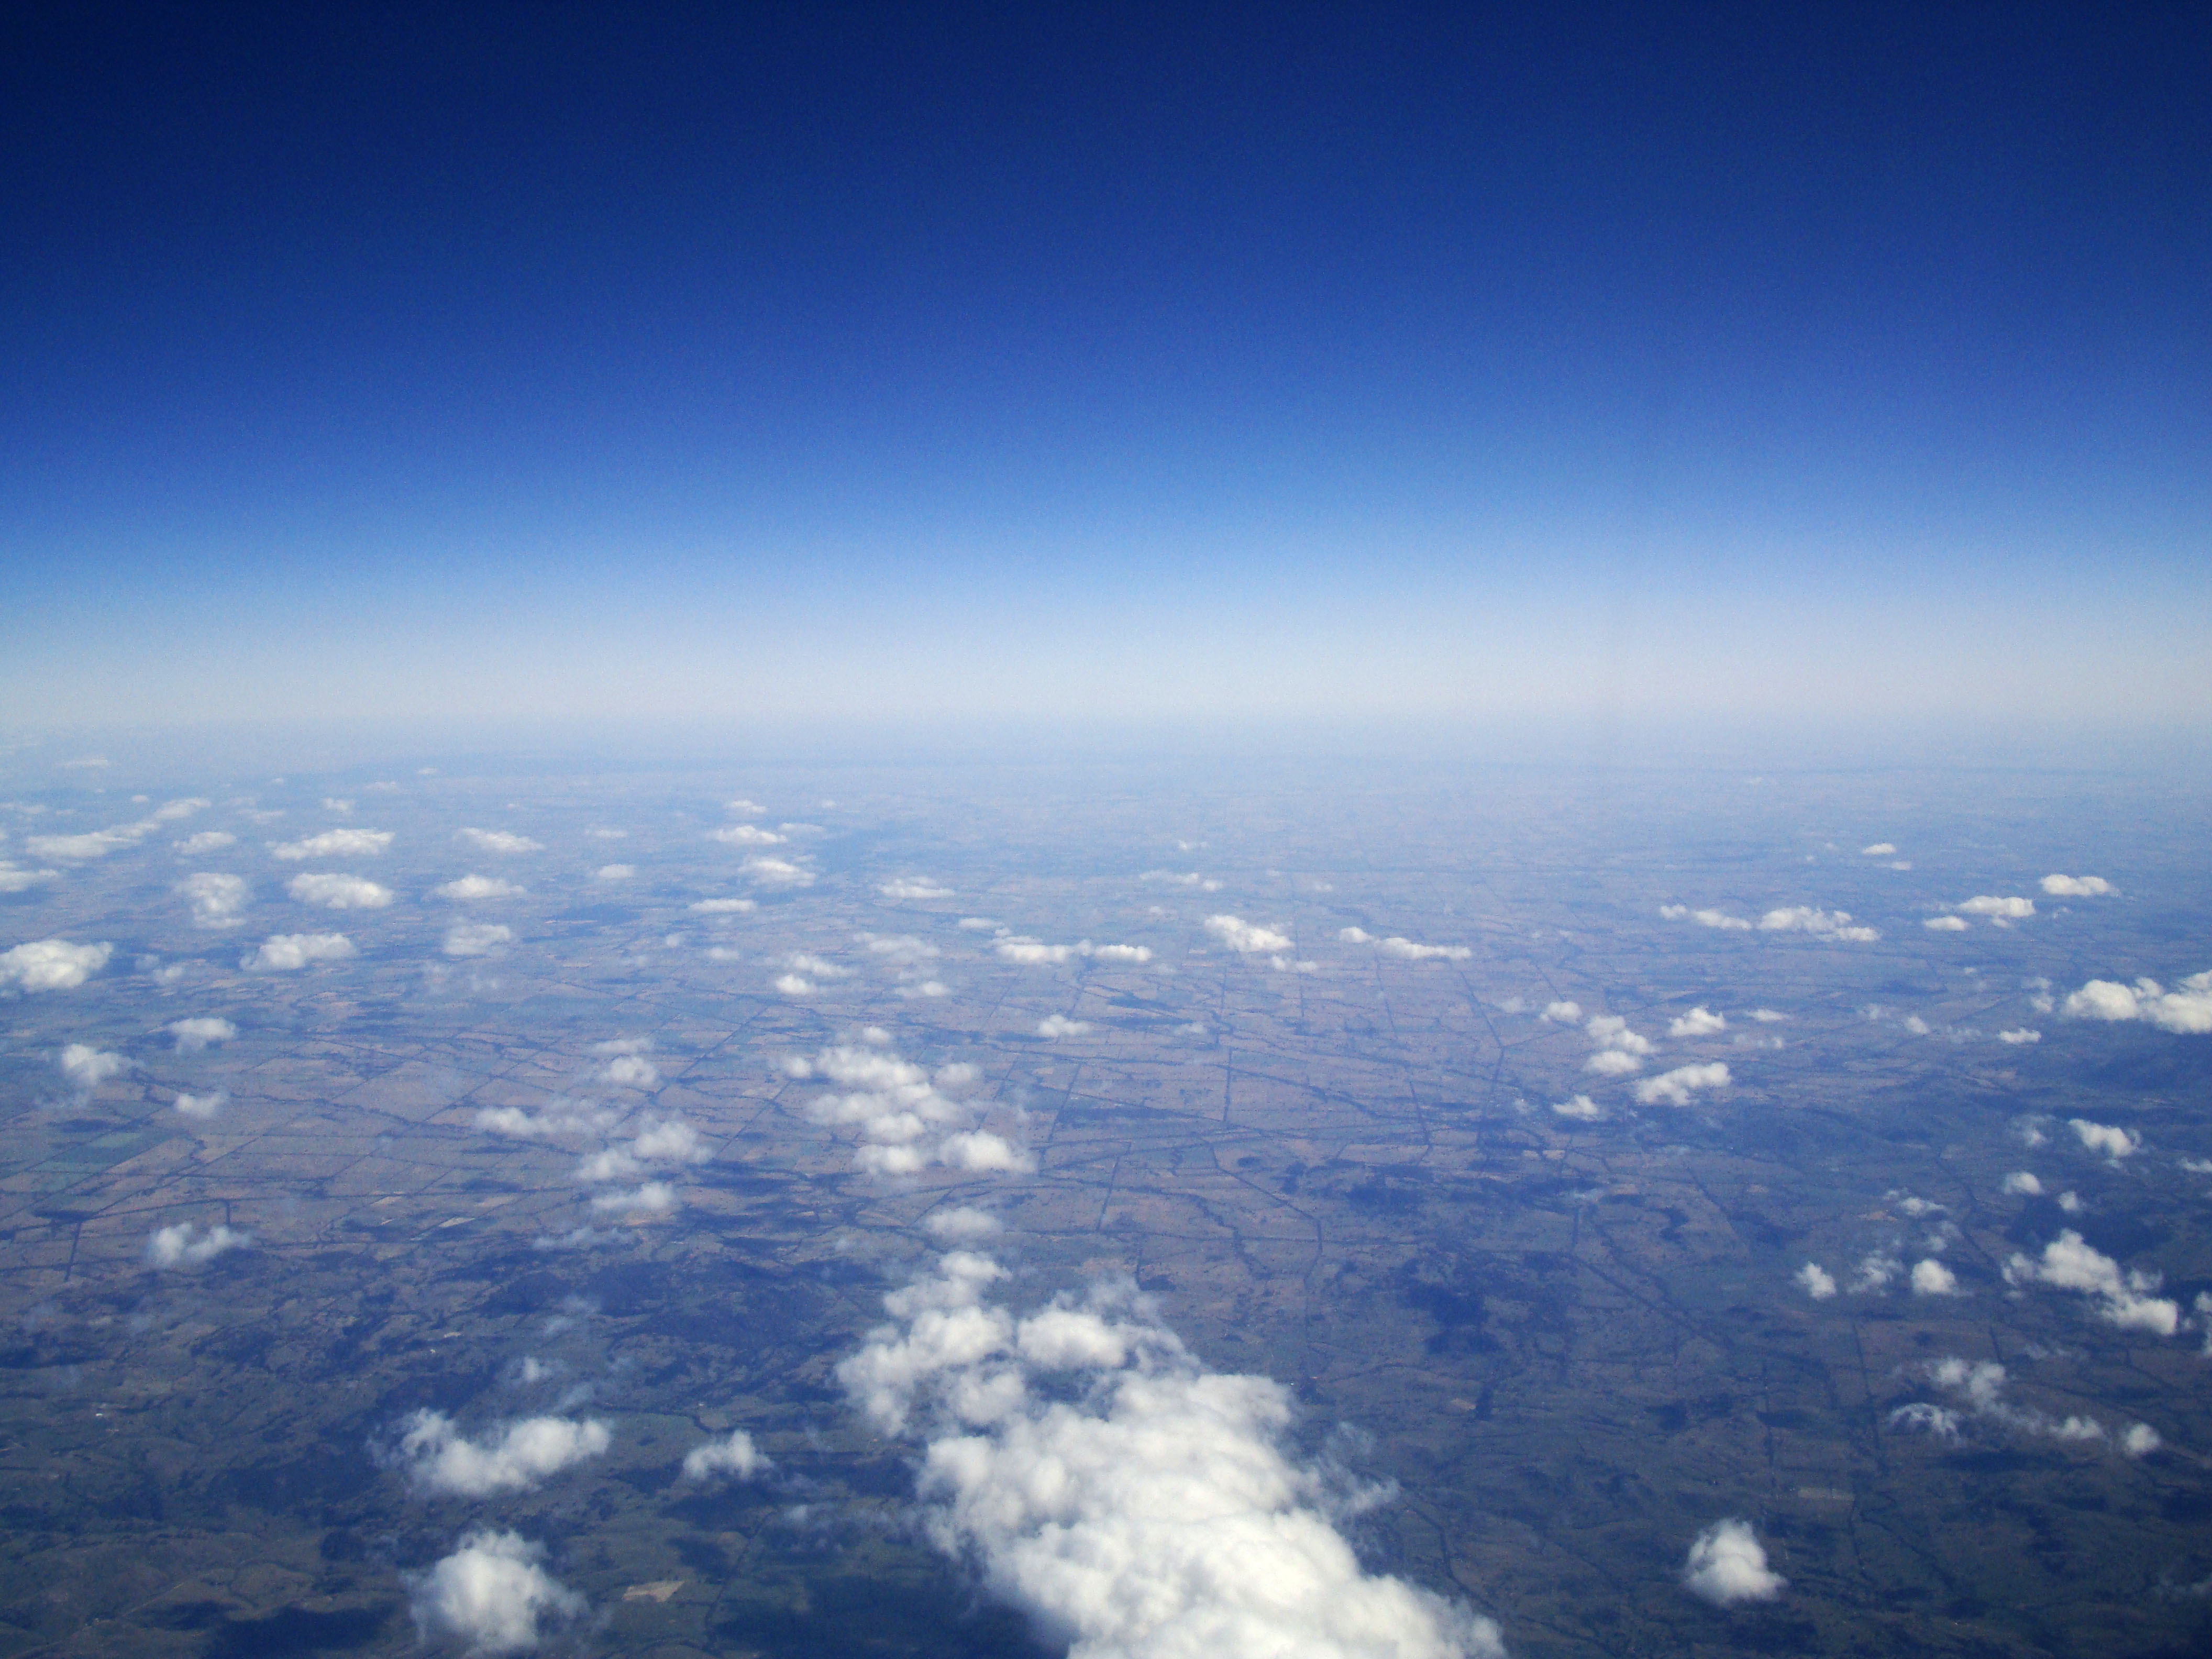 Textures Clouds Formations Sky Storms Weather Phenomena Aerial Views 07